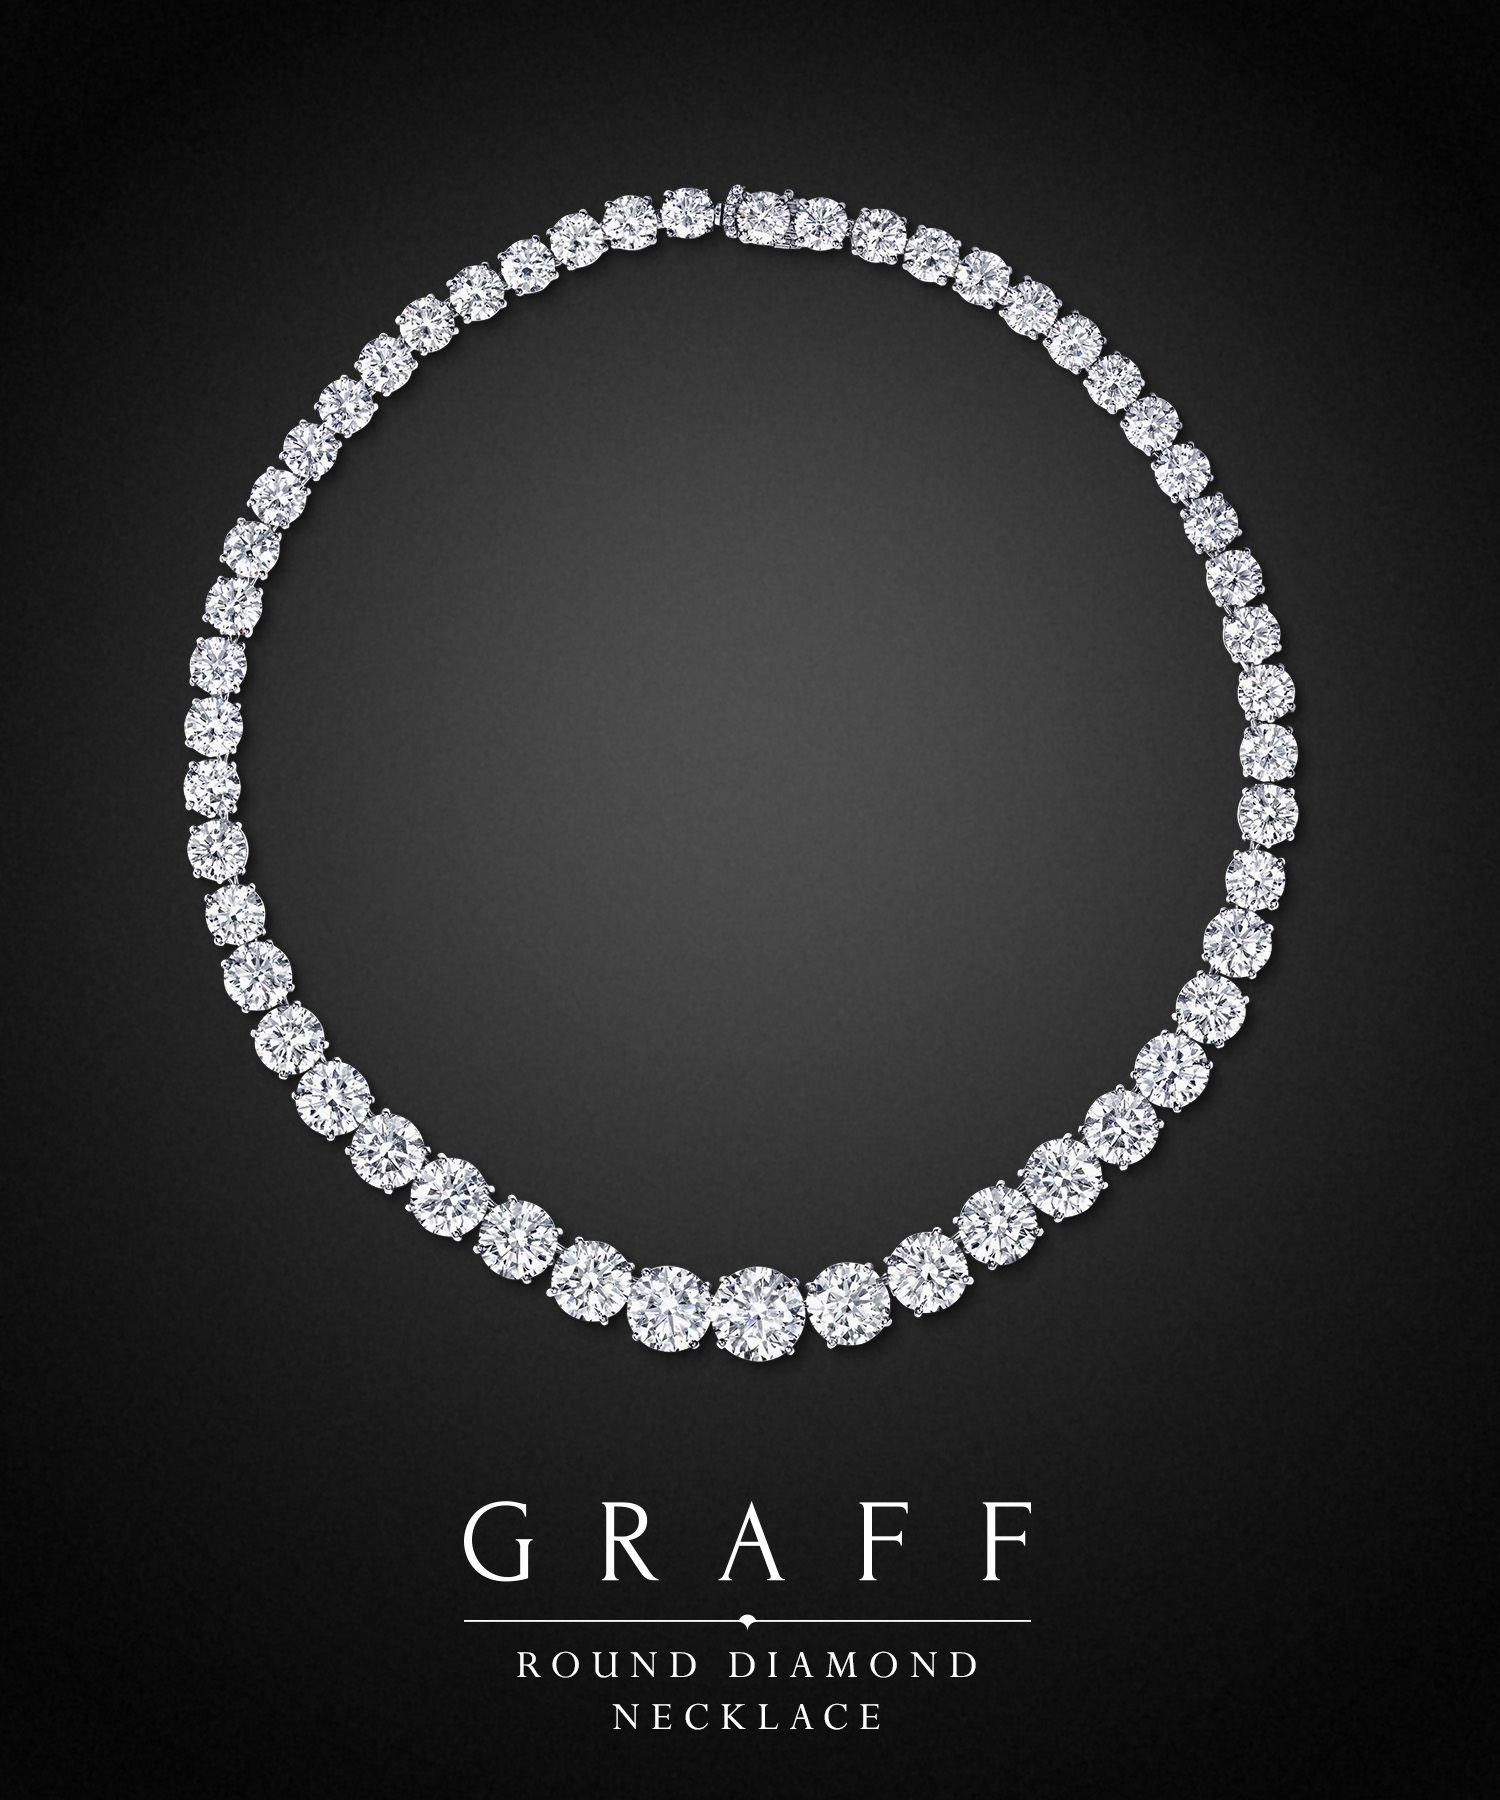 cc25a7acbb7 Graff Diamonds: Round Diamond Necklace #diamondnecklace | Classy ...